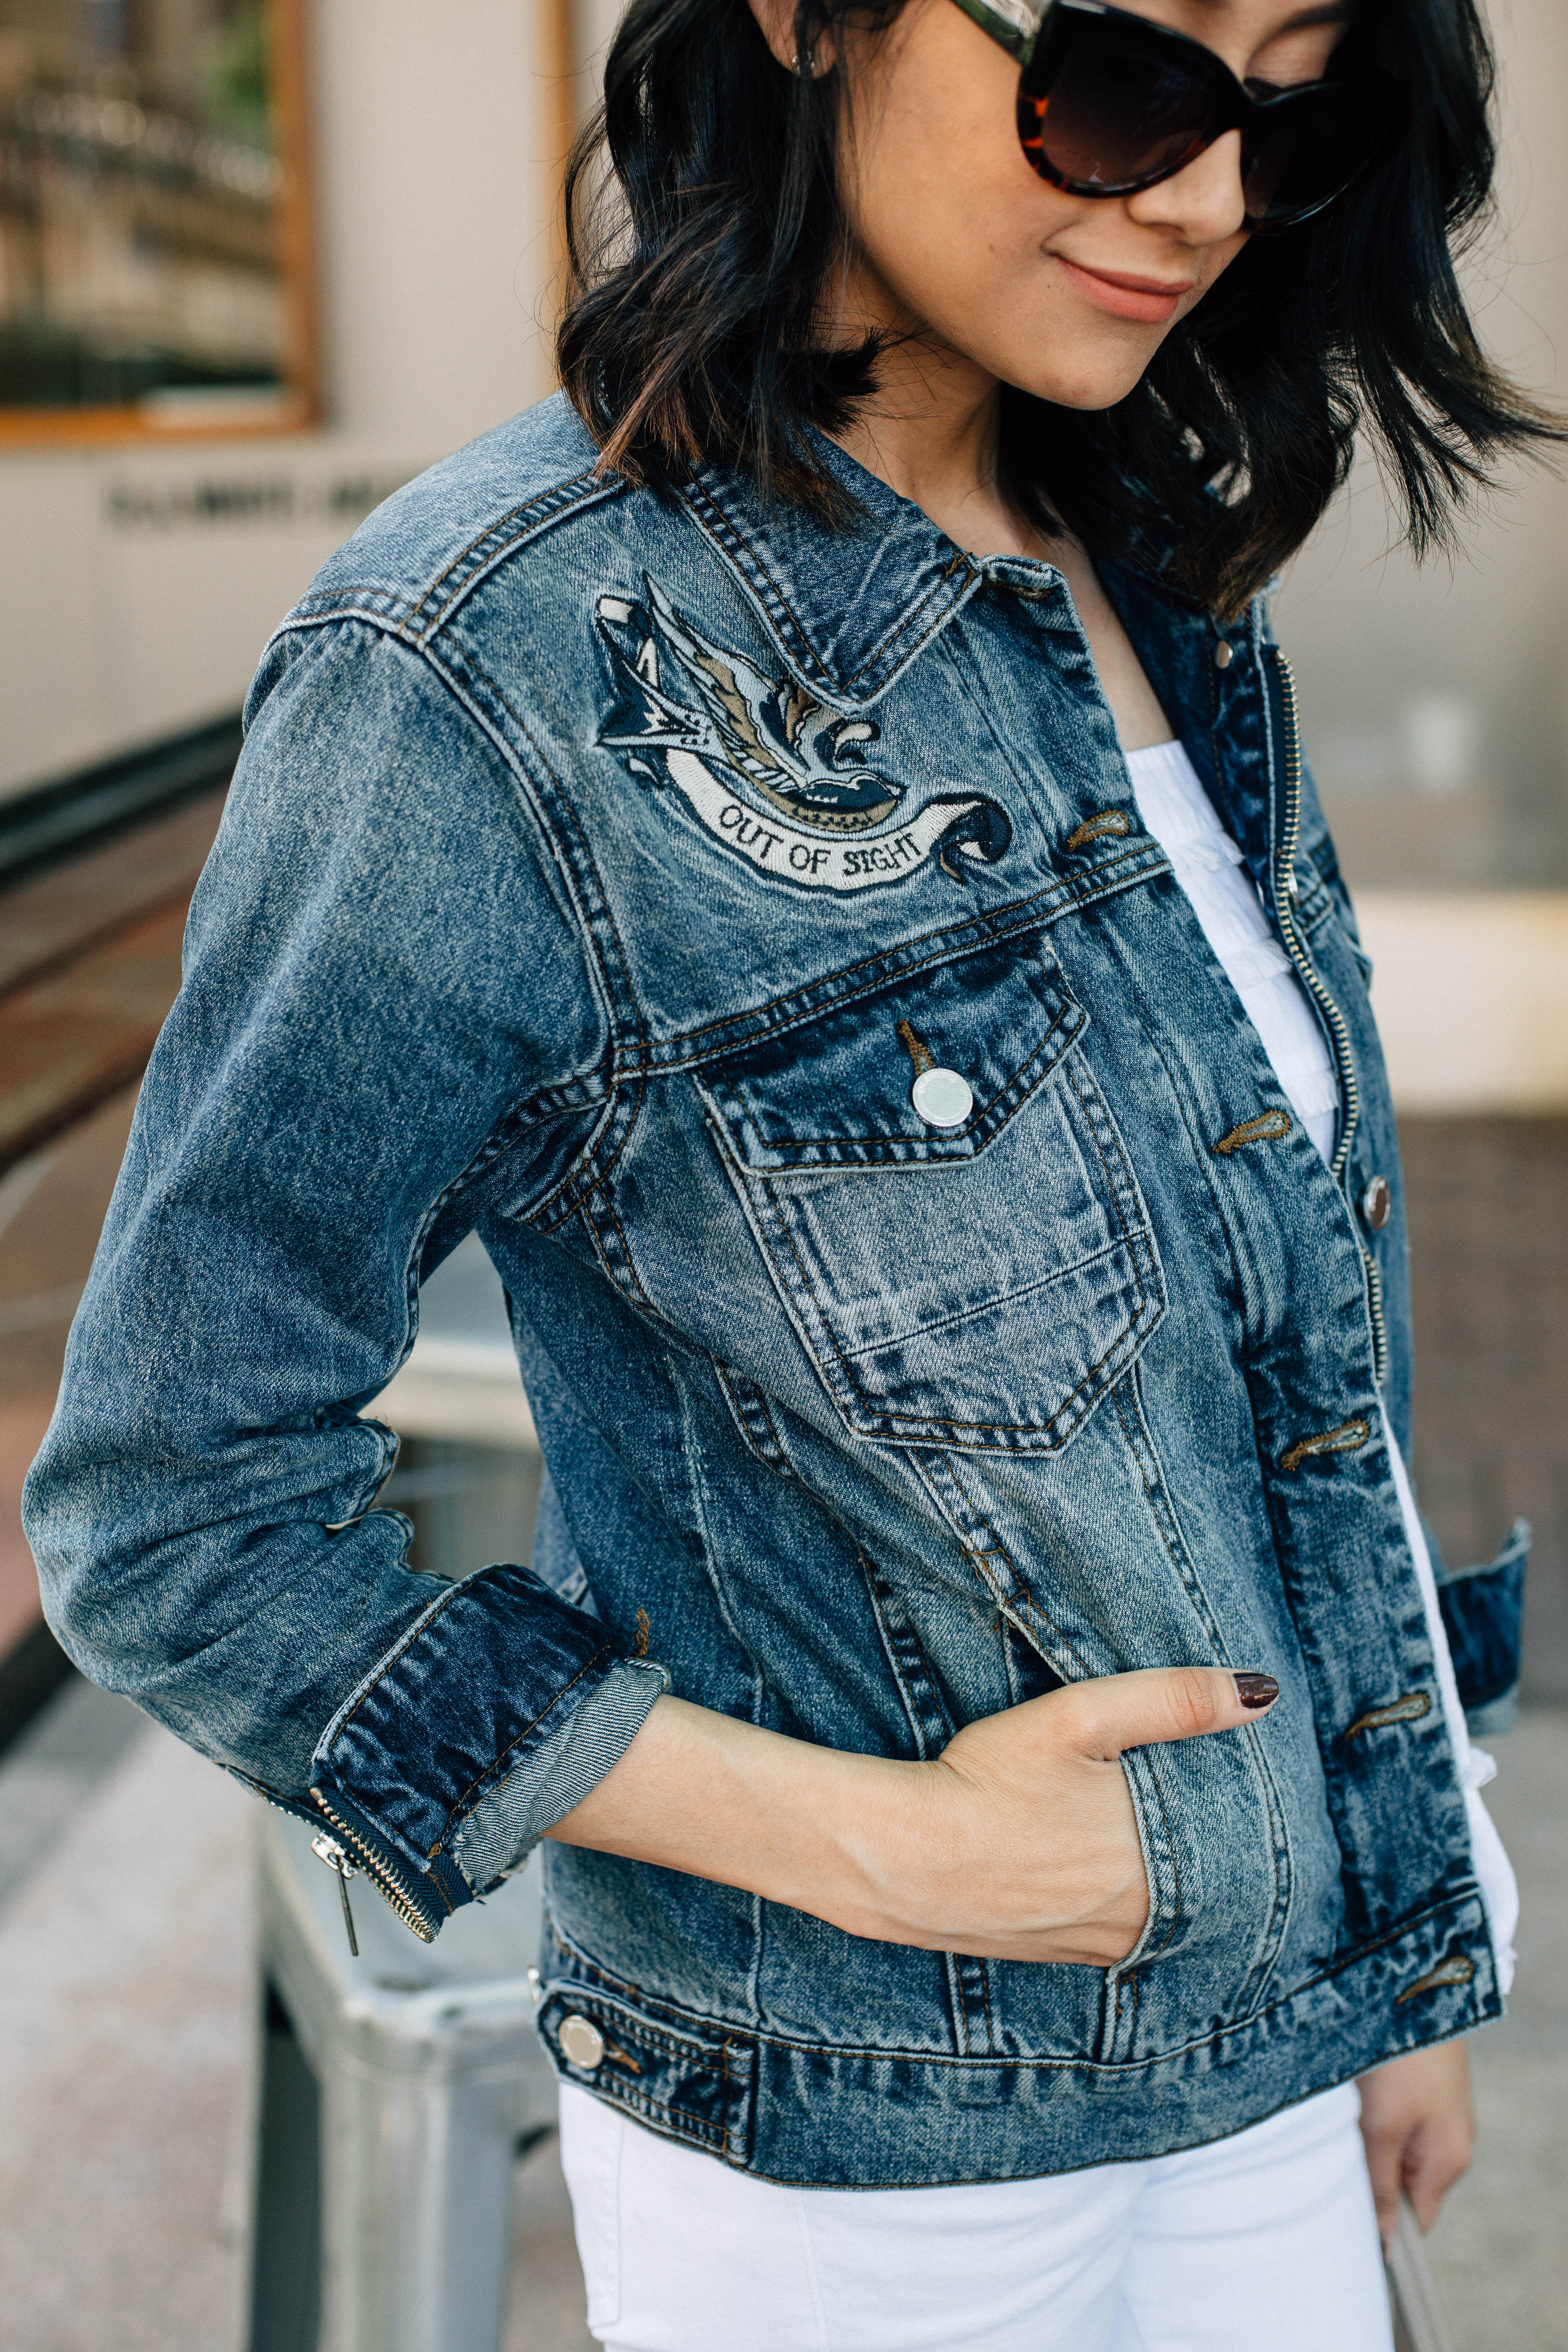 Lilly Beltran of Daily Craving blog wearing an ILY Couture denim jacket and cat eye sunglasses